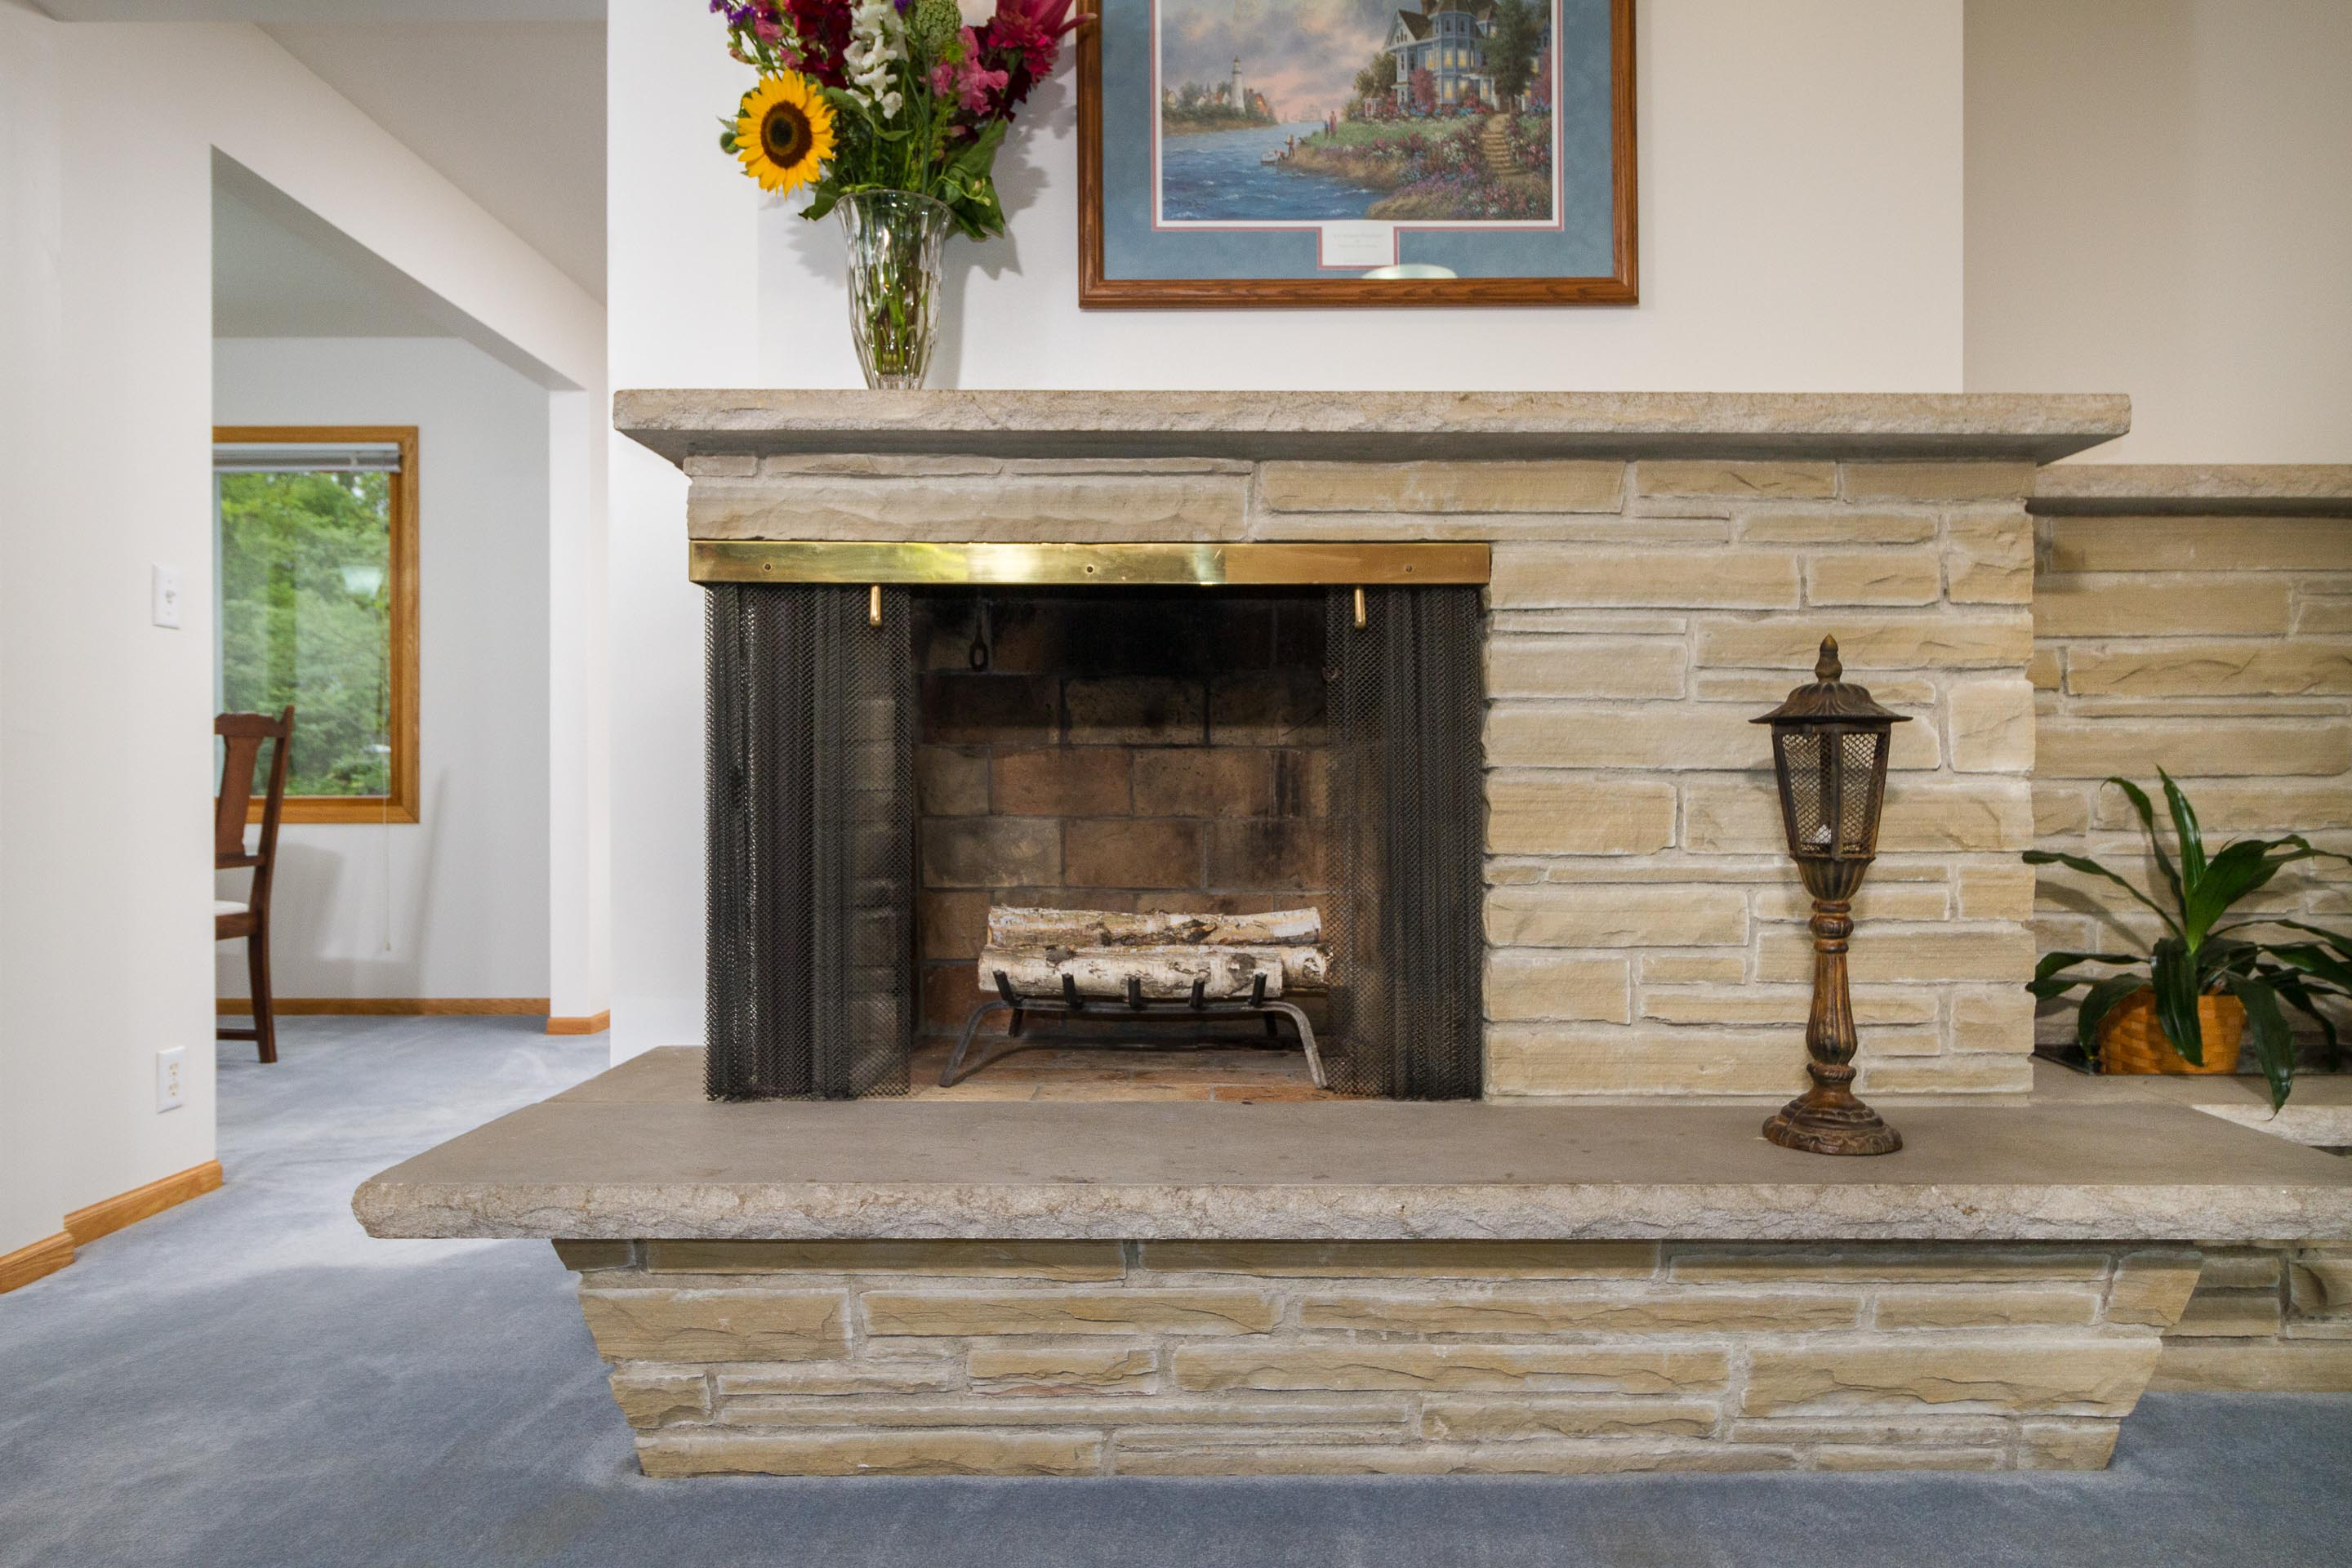 Home Buying 101 Fireplace Chimney Inspections  Minneapolis Real Estate  Homes